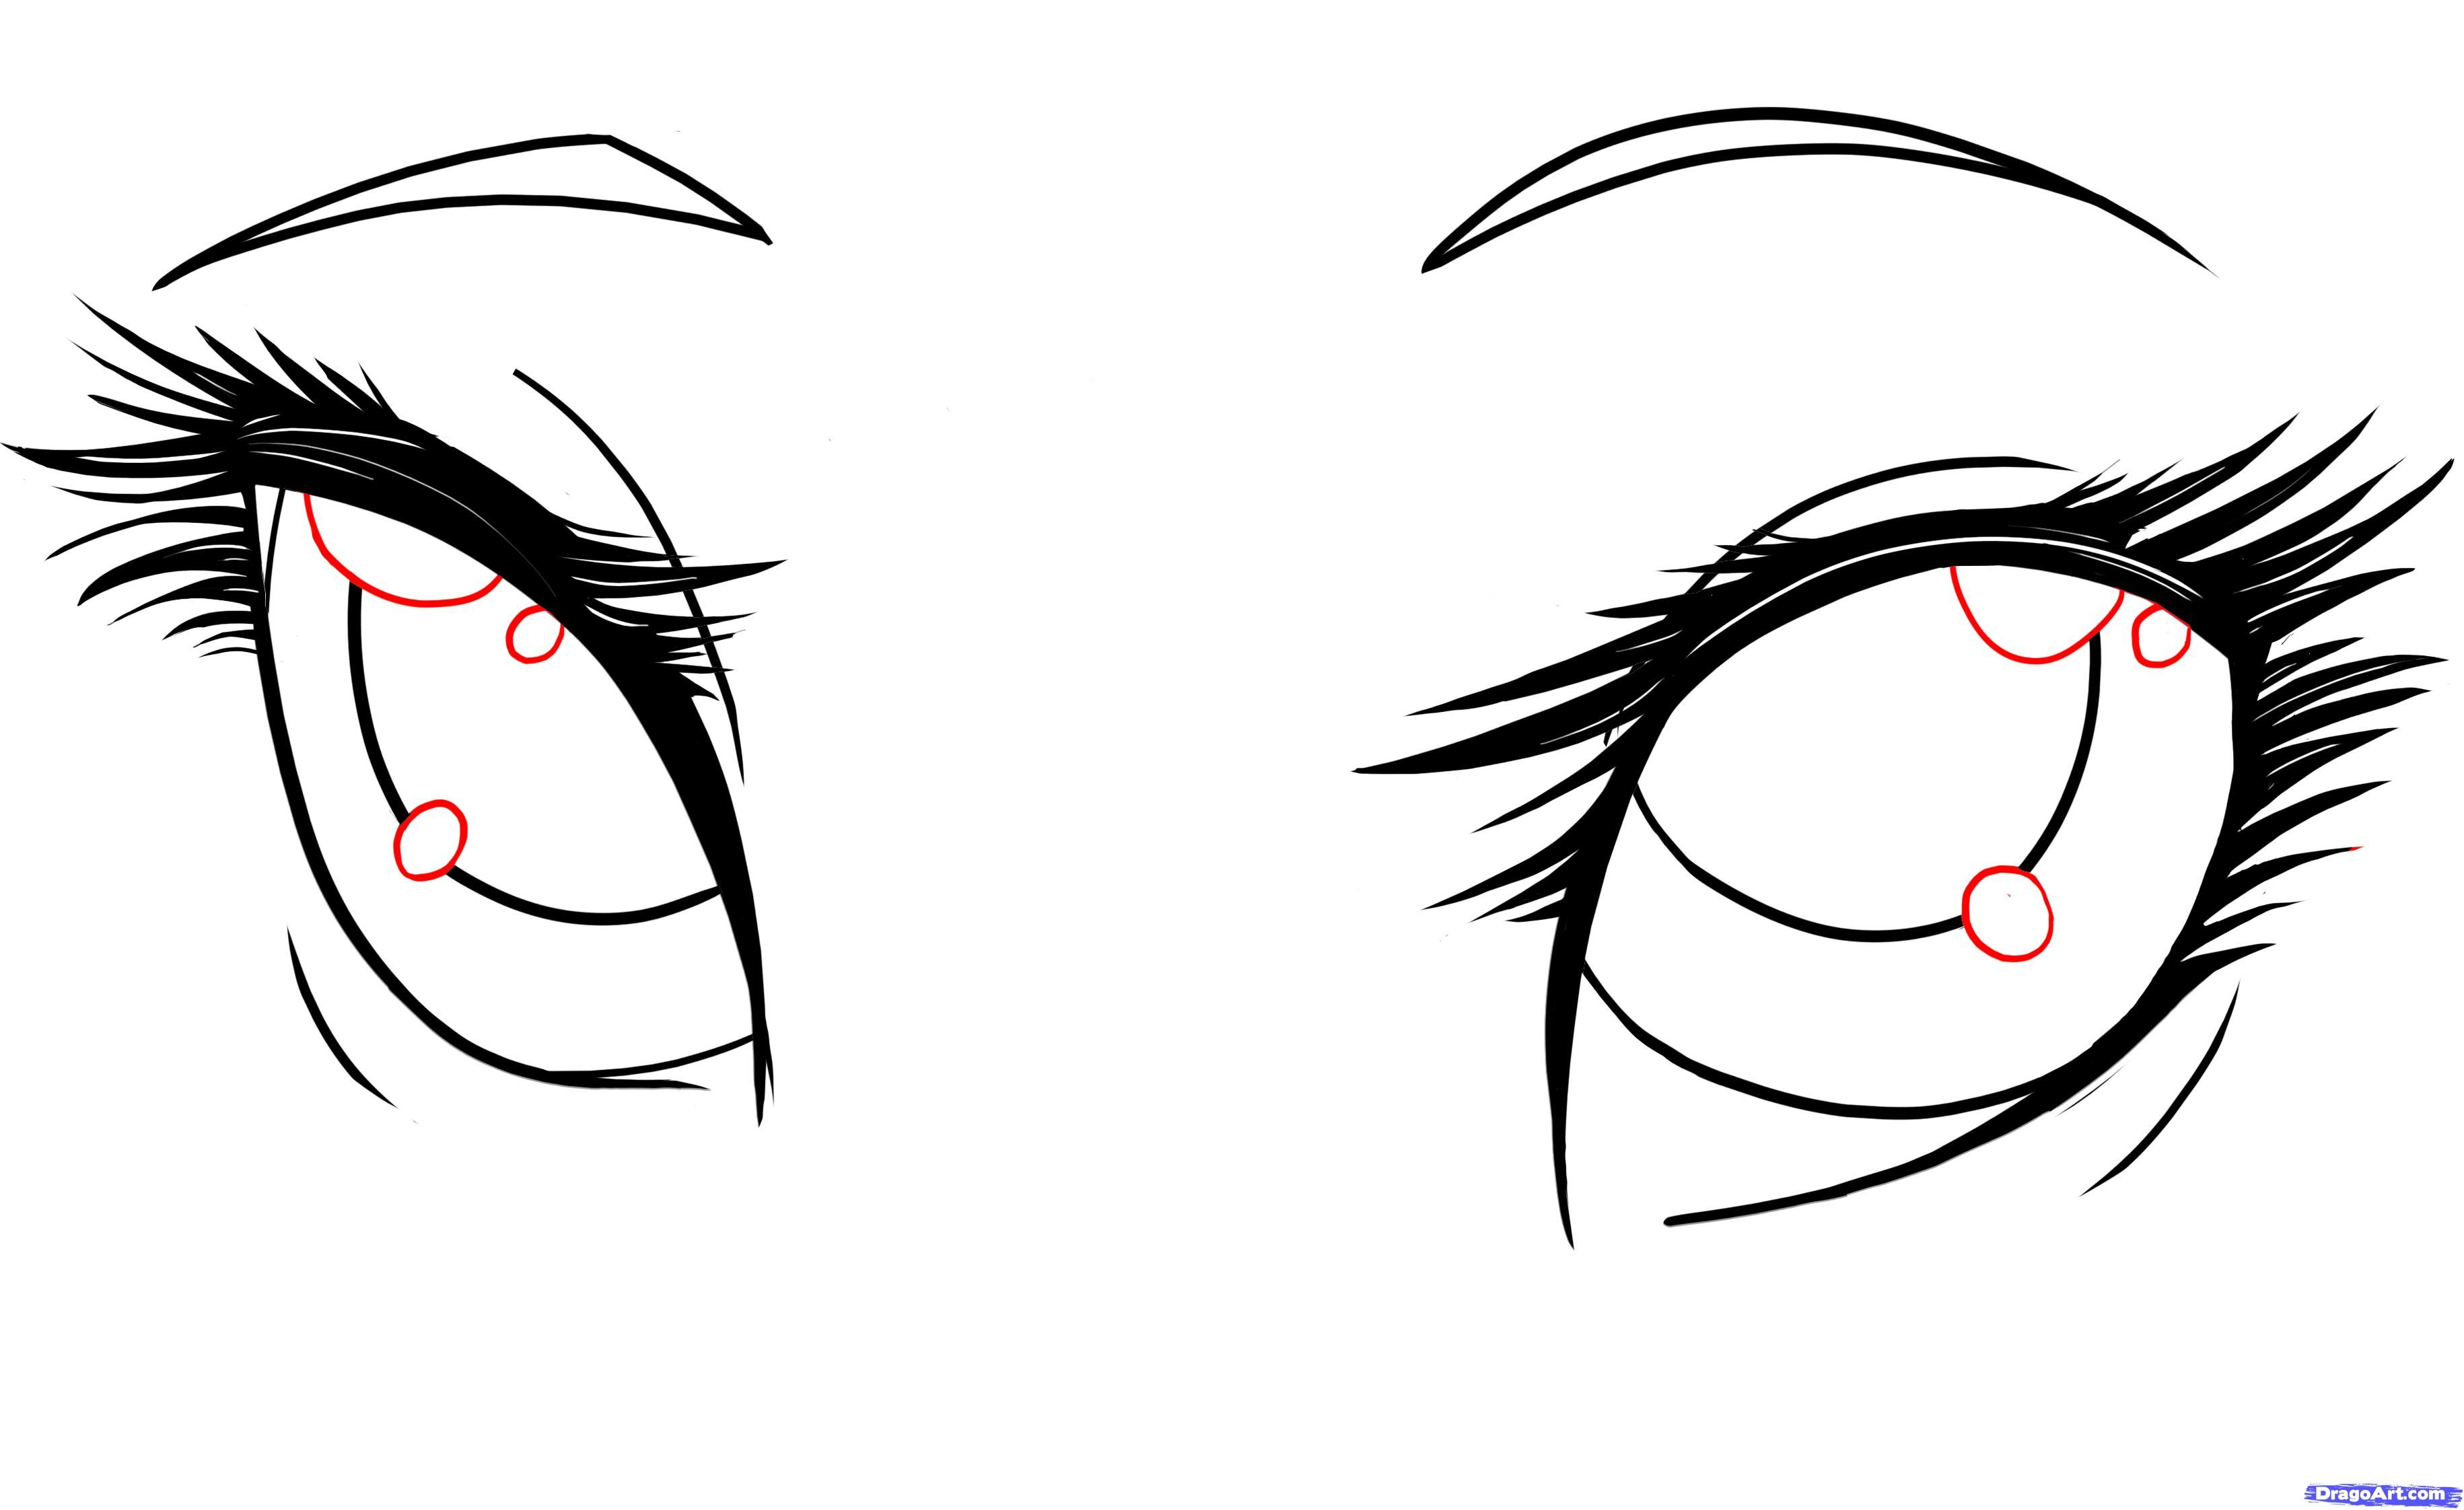 How To Draw Anime Eyes Step 14 1 000000135131 5 Jpg 3 661 2 244